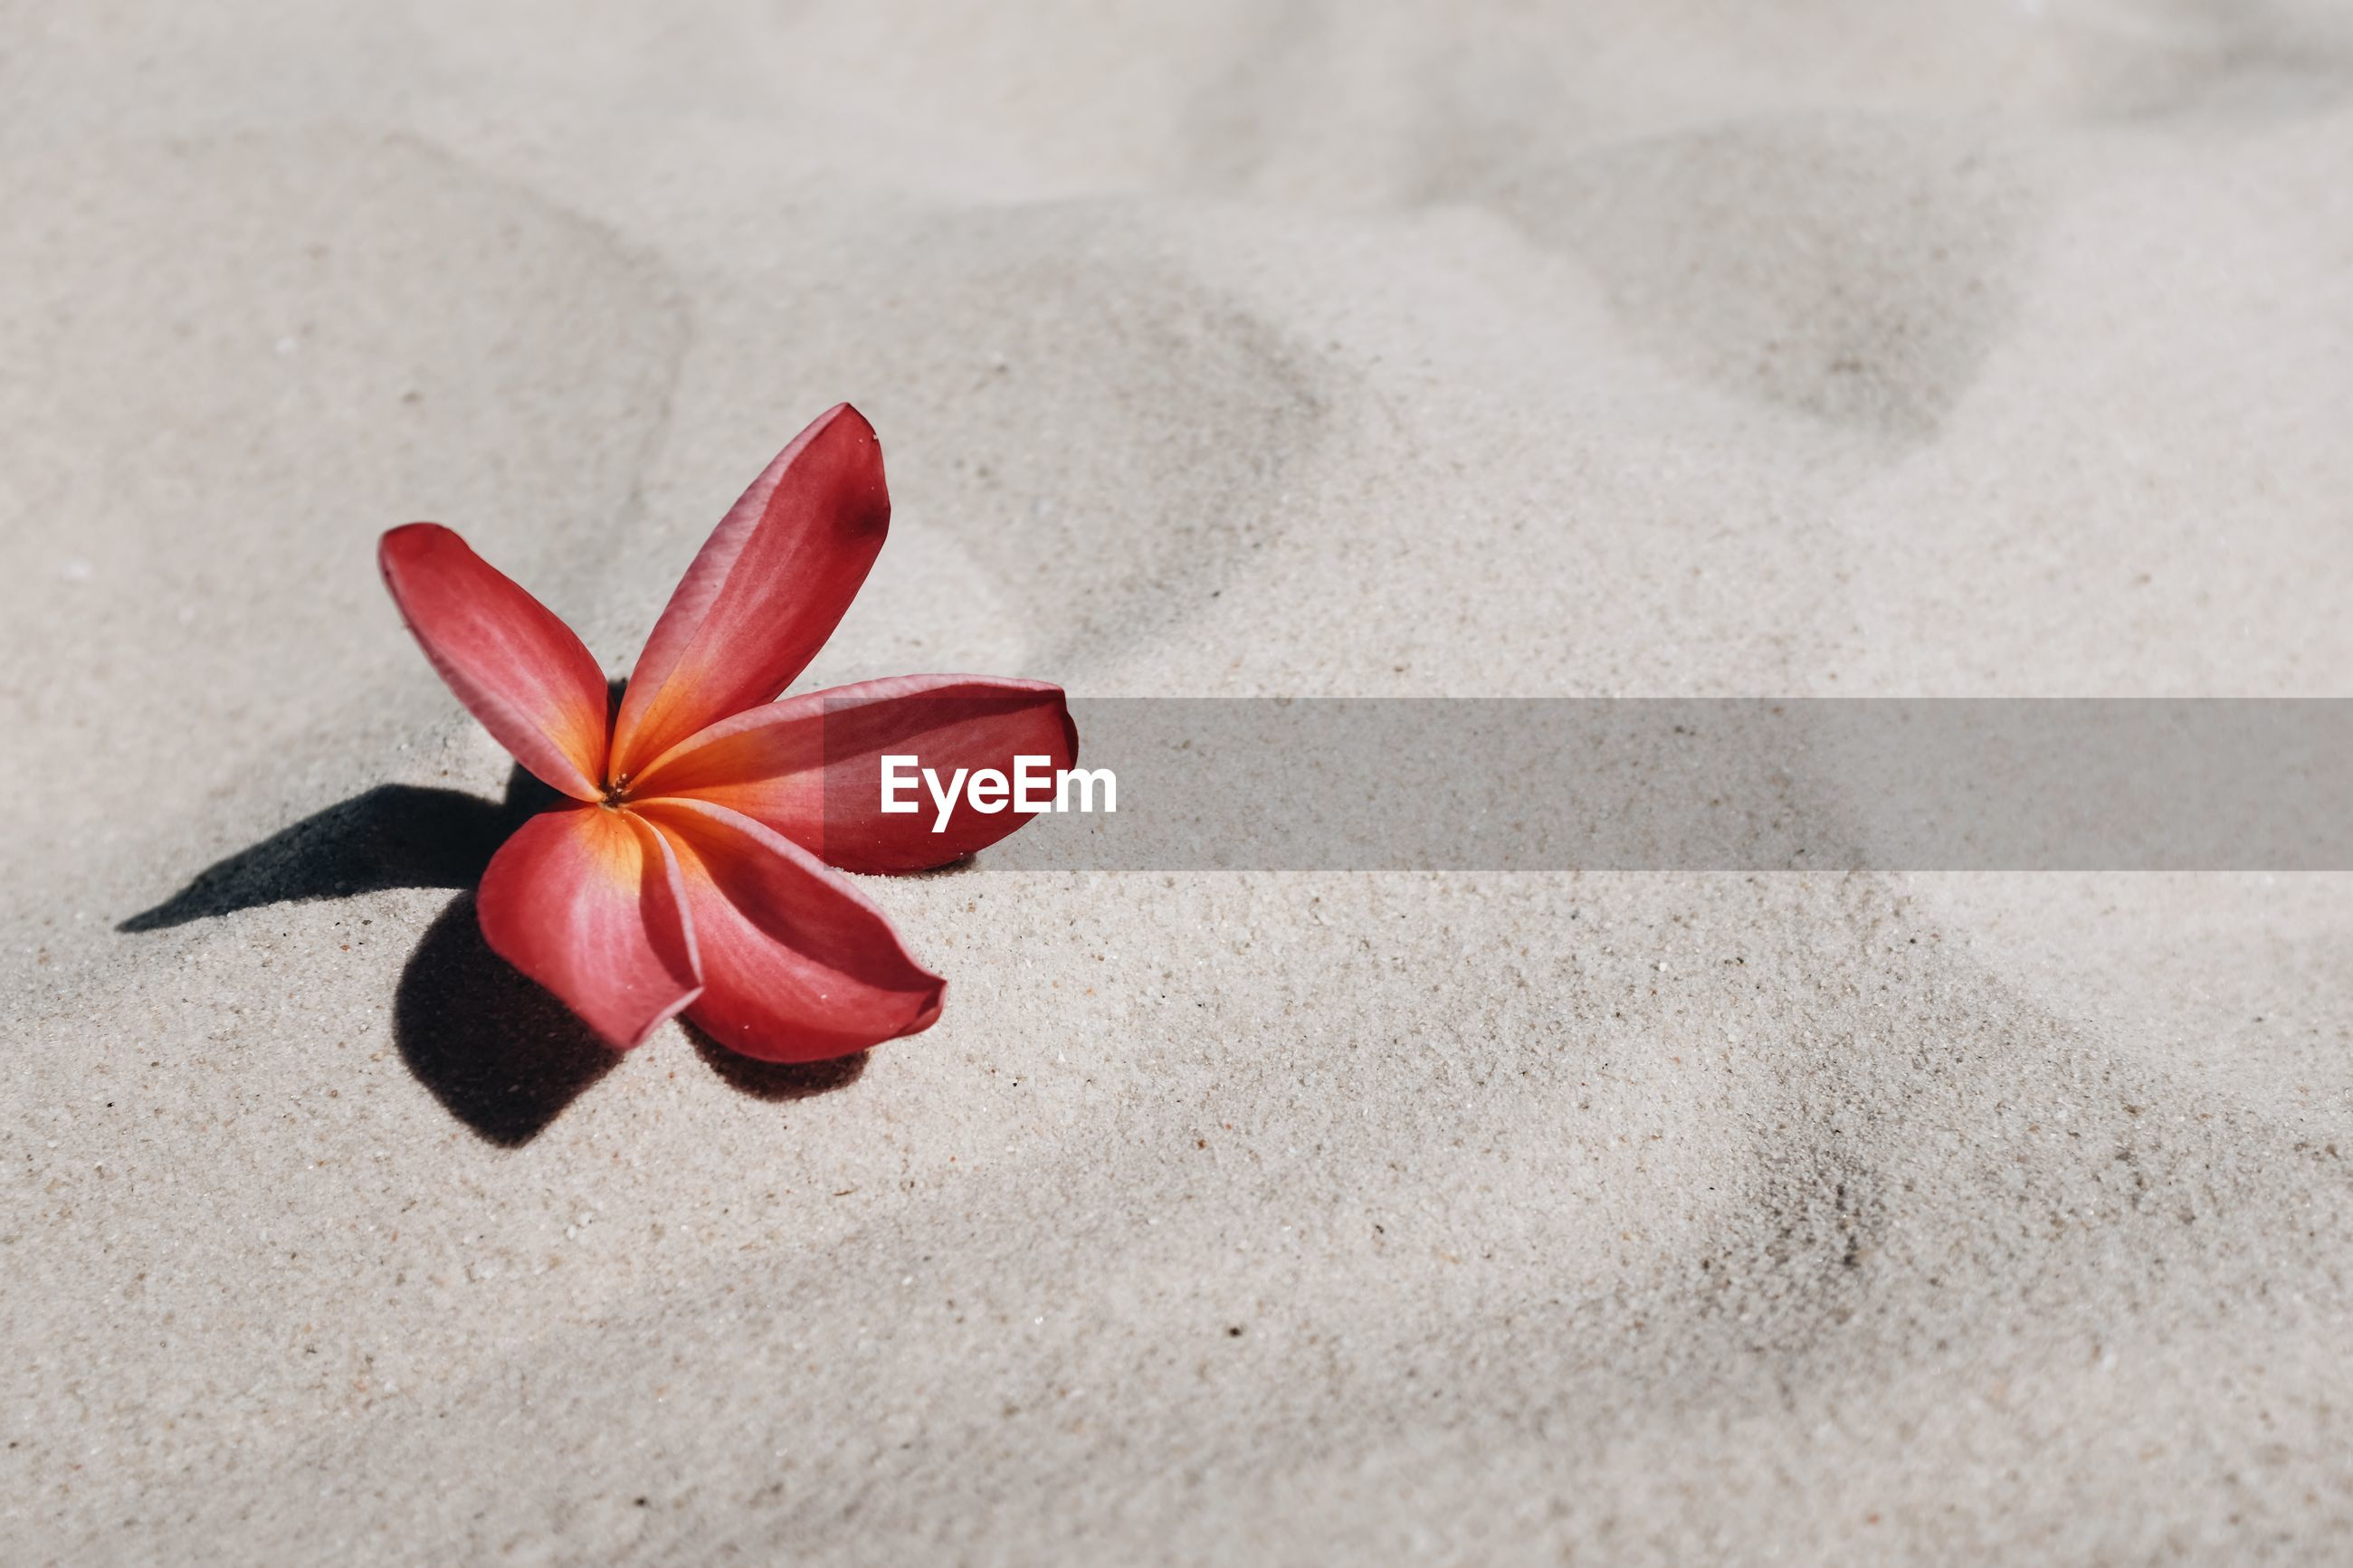 CLOSE-UP OF RED FLOWER ON SAND